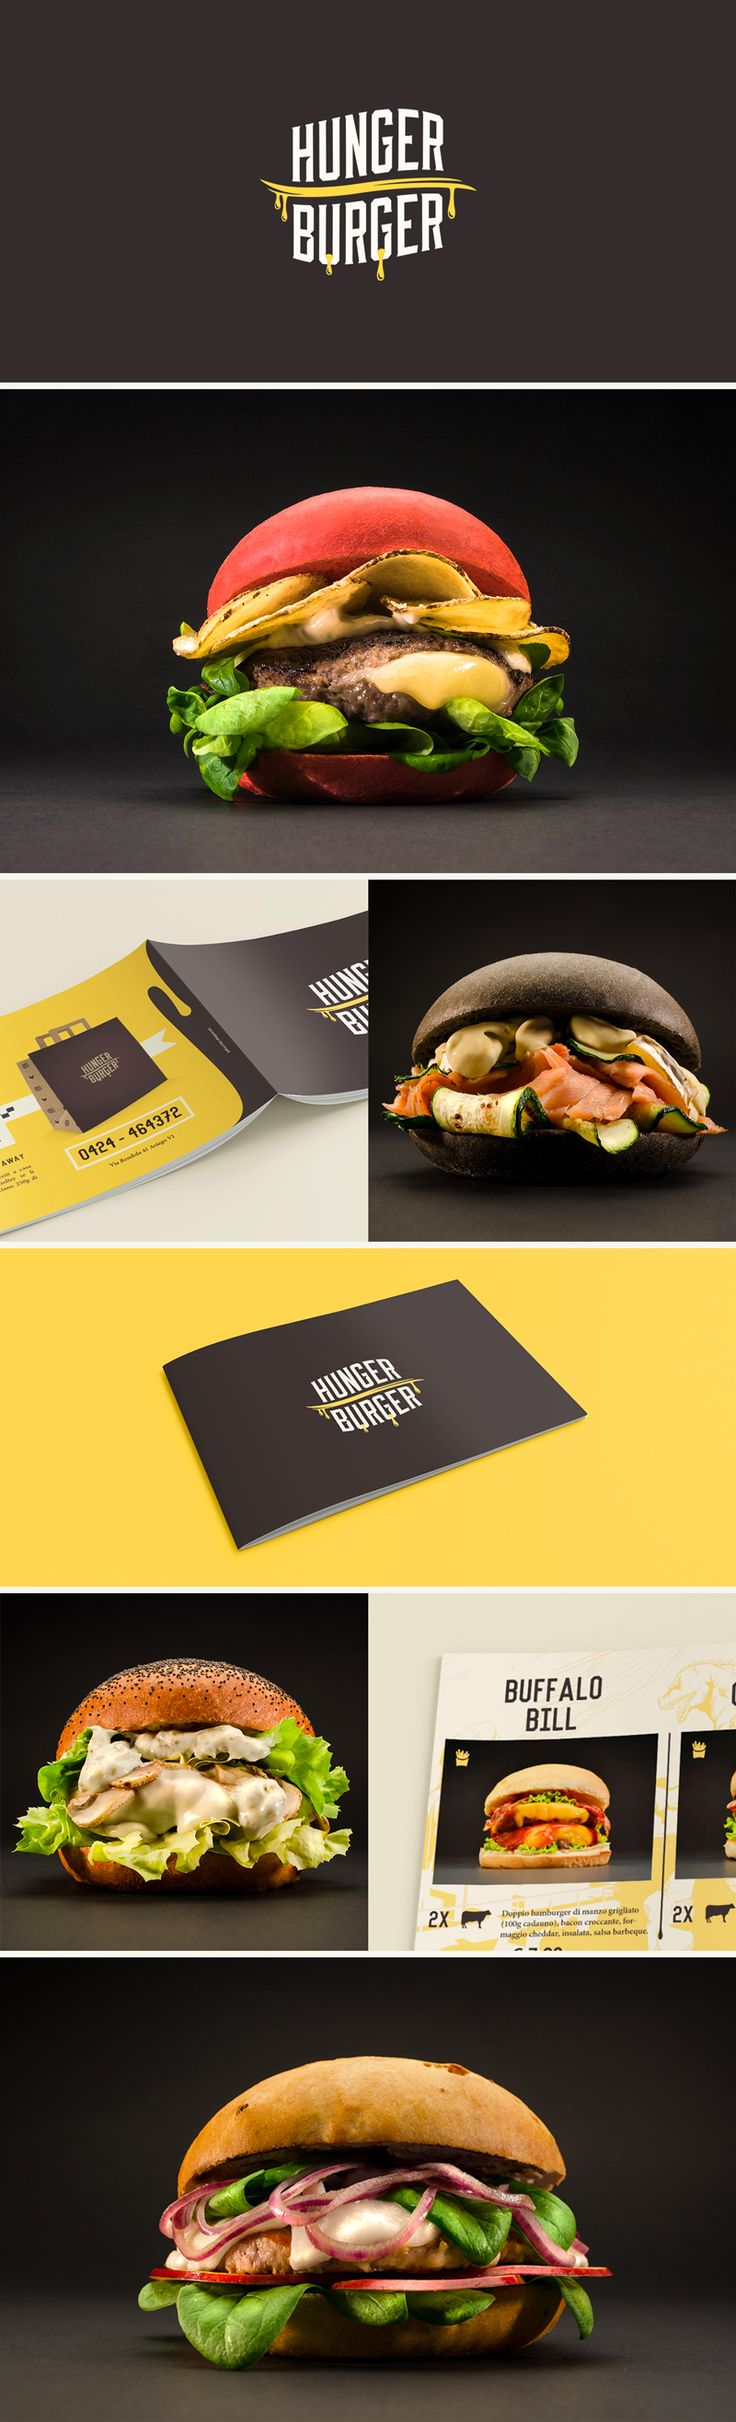 Hunger Burger branding | www.ofmagnet.com #graphic #design #logo #photo #burger #menu #pub #burgerhouse #food #tasty #ofmagnet #asiago